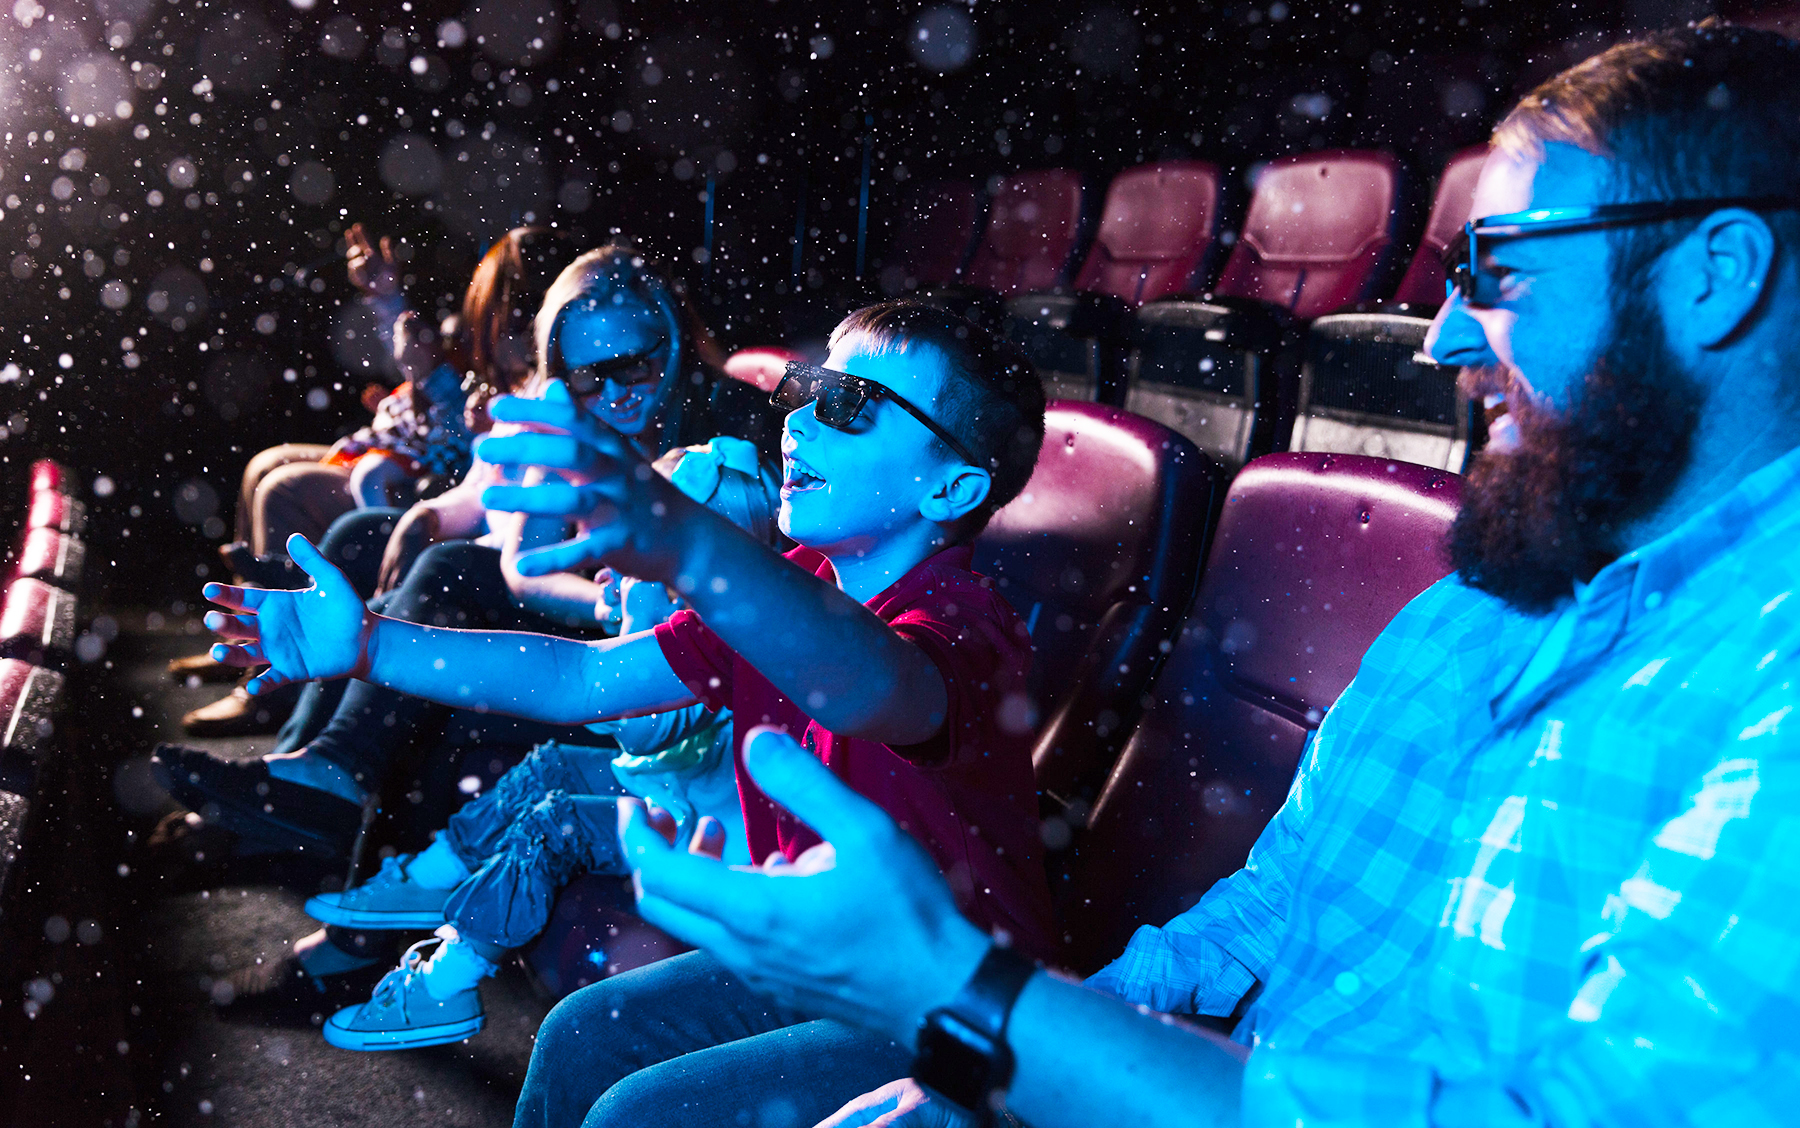 4D Theater, South Carolina State Museum, Snow, Open For Fun